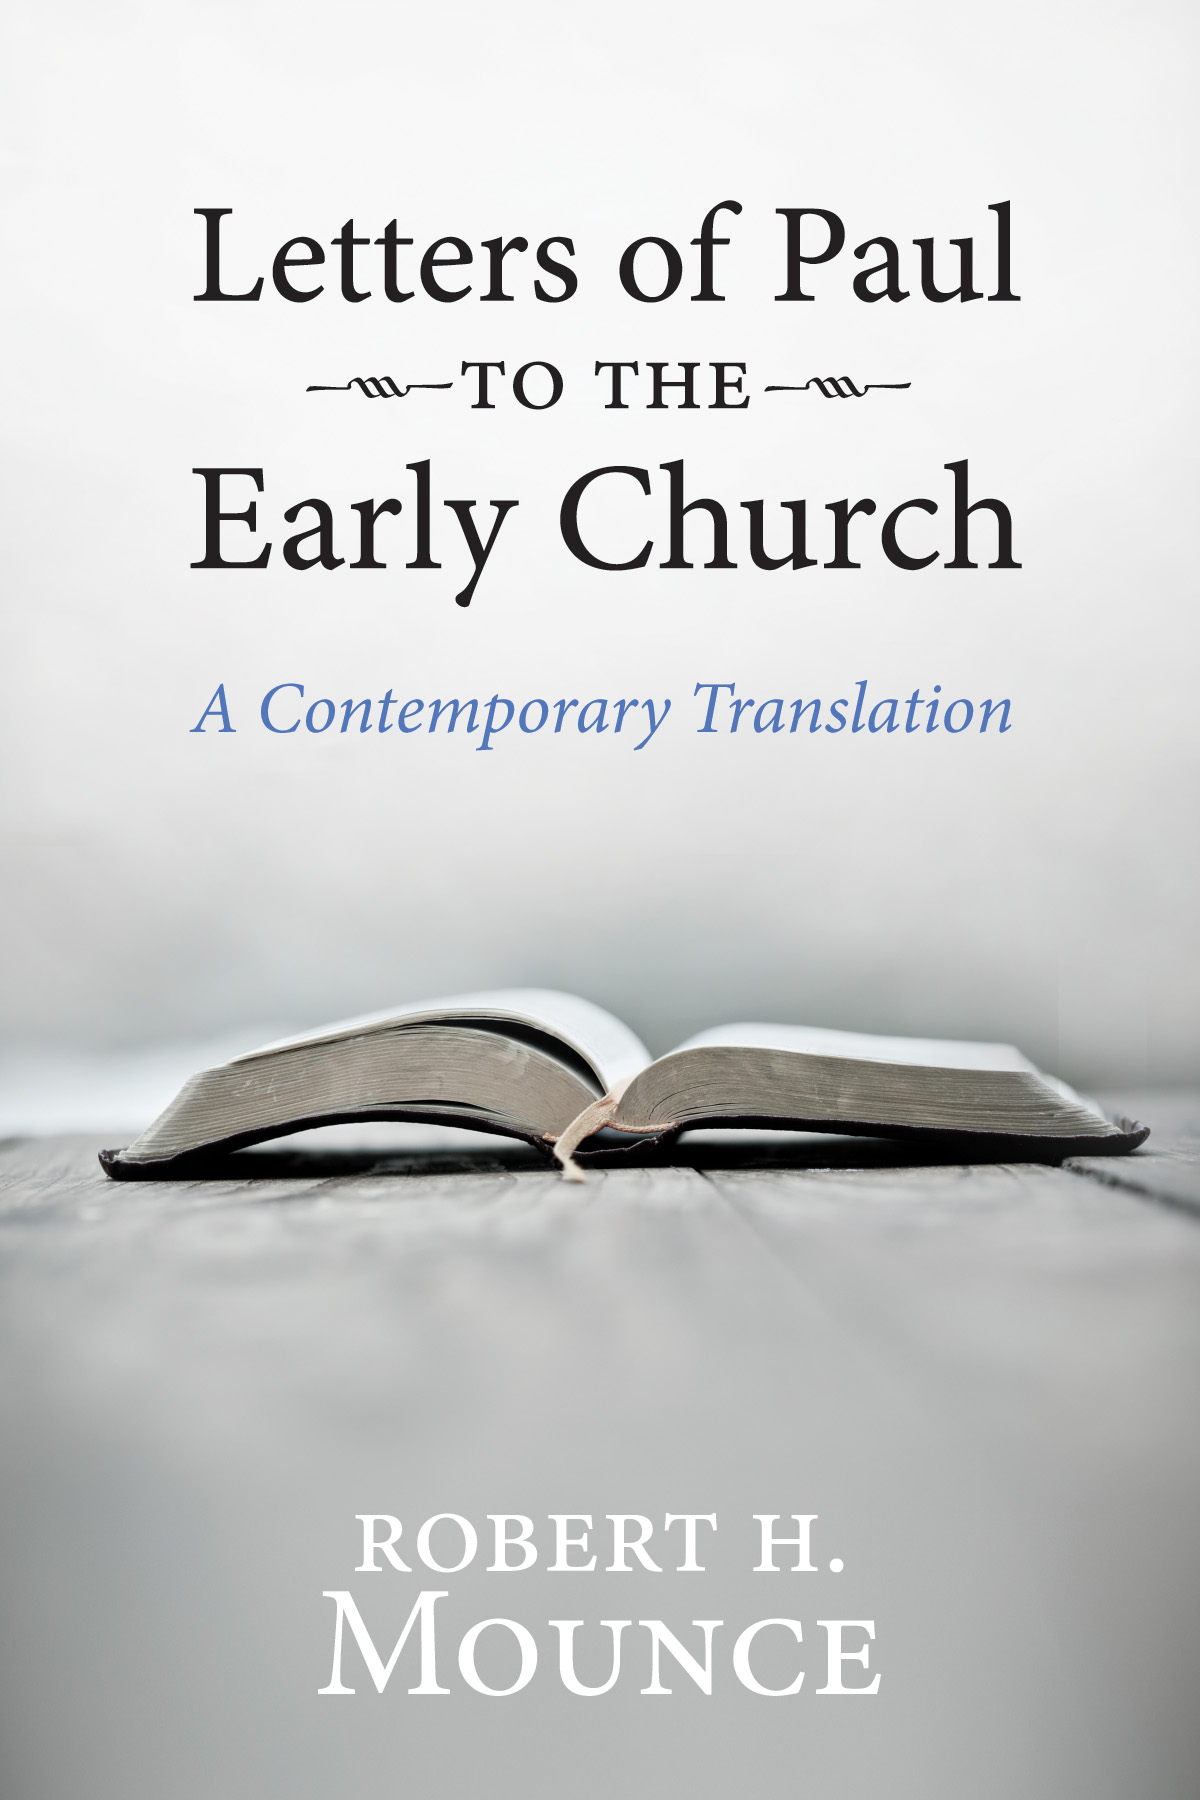 a letter to an early christian community is called letters of paul to the early church morning publishing 726